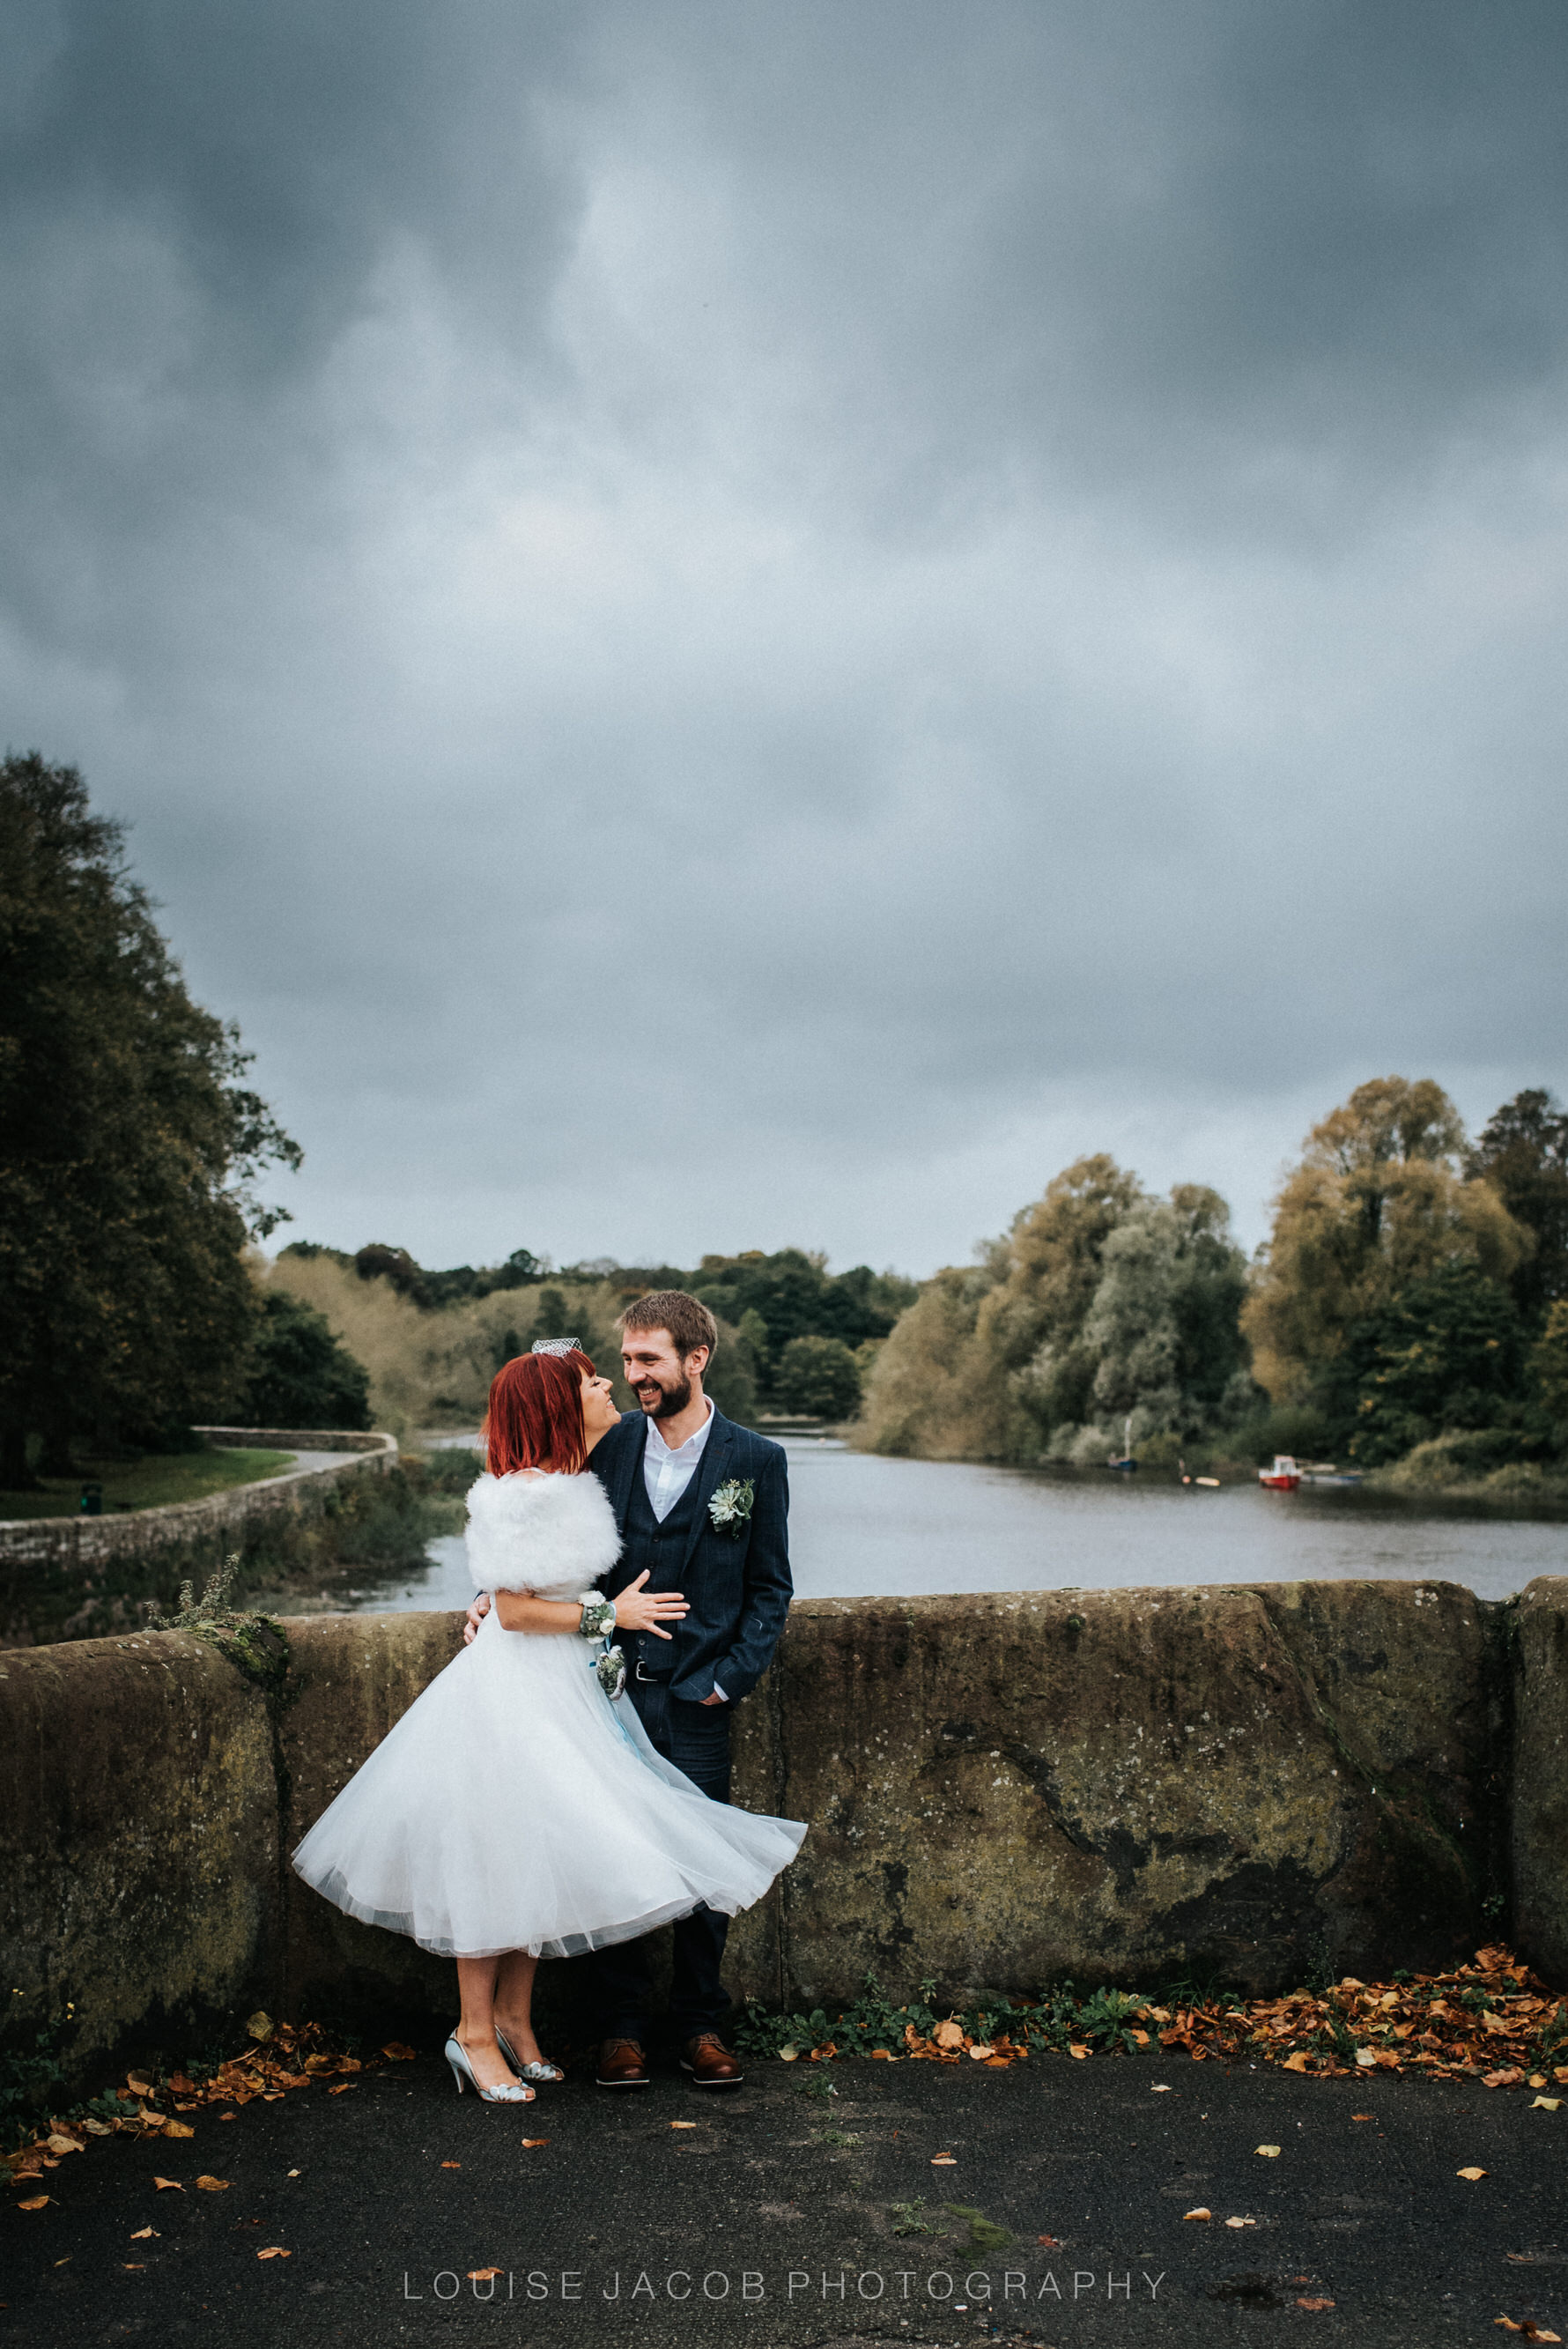 Documentary Wedding Photography - Bride and Groom on a bridge overlooking the River Dee.